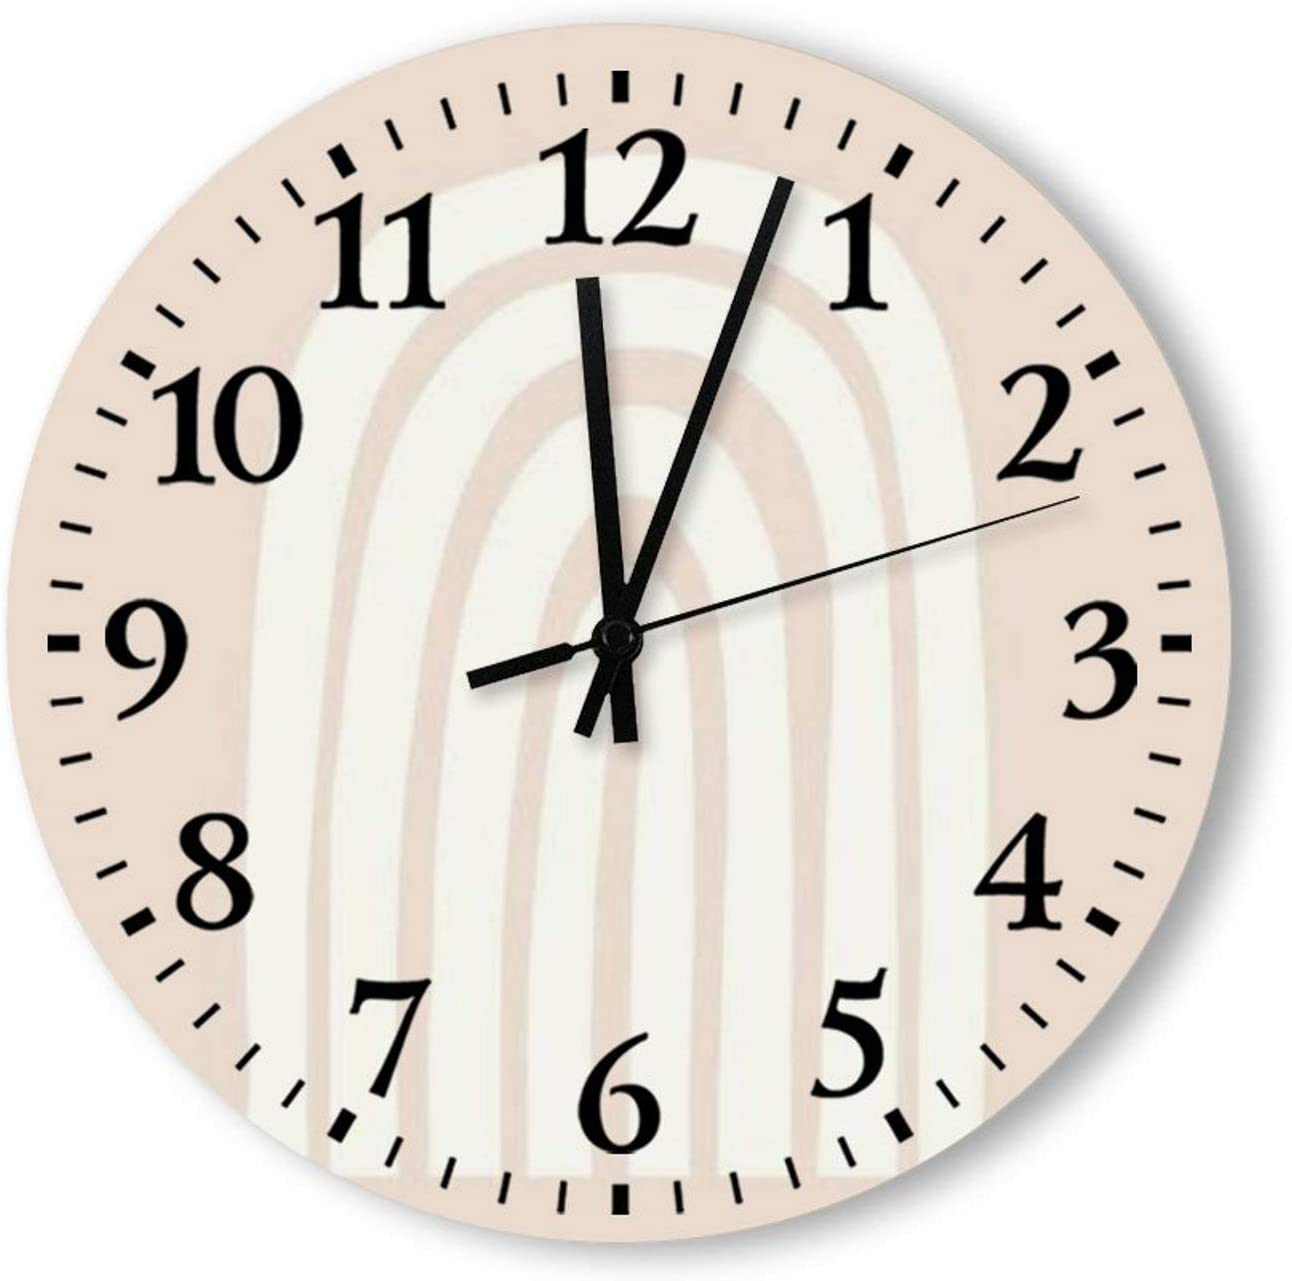 Round Wood Wall Clock Home Decor,Minimalist Pink Boho Rainbow Pattern, Battery Operated, no Ticking Sound, for Home, The Kitchen, Living Room, Bedroom, Restaurant or Office, Made in US